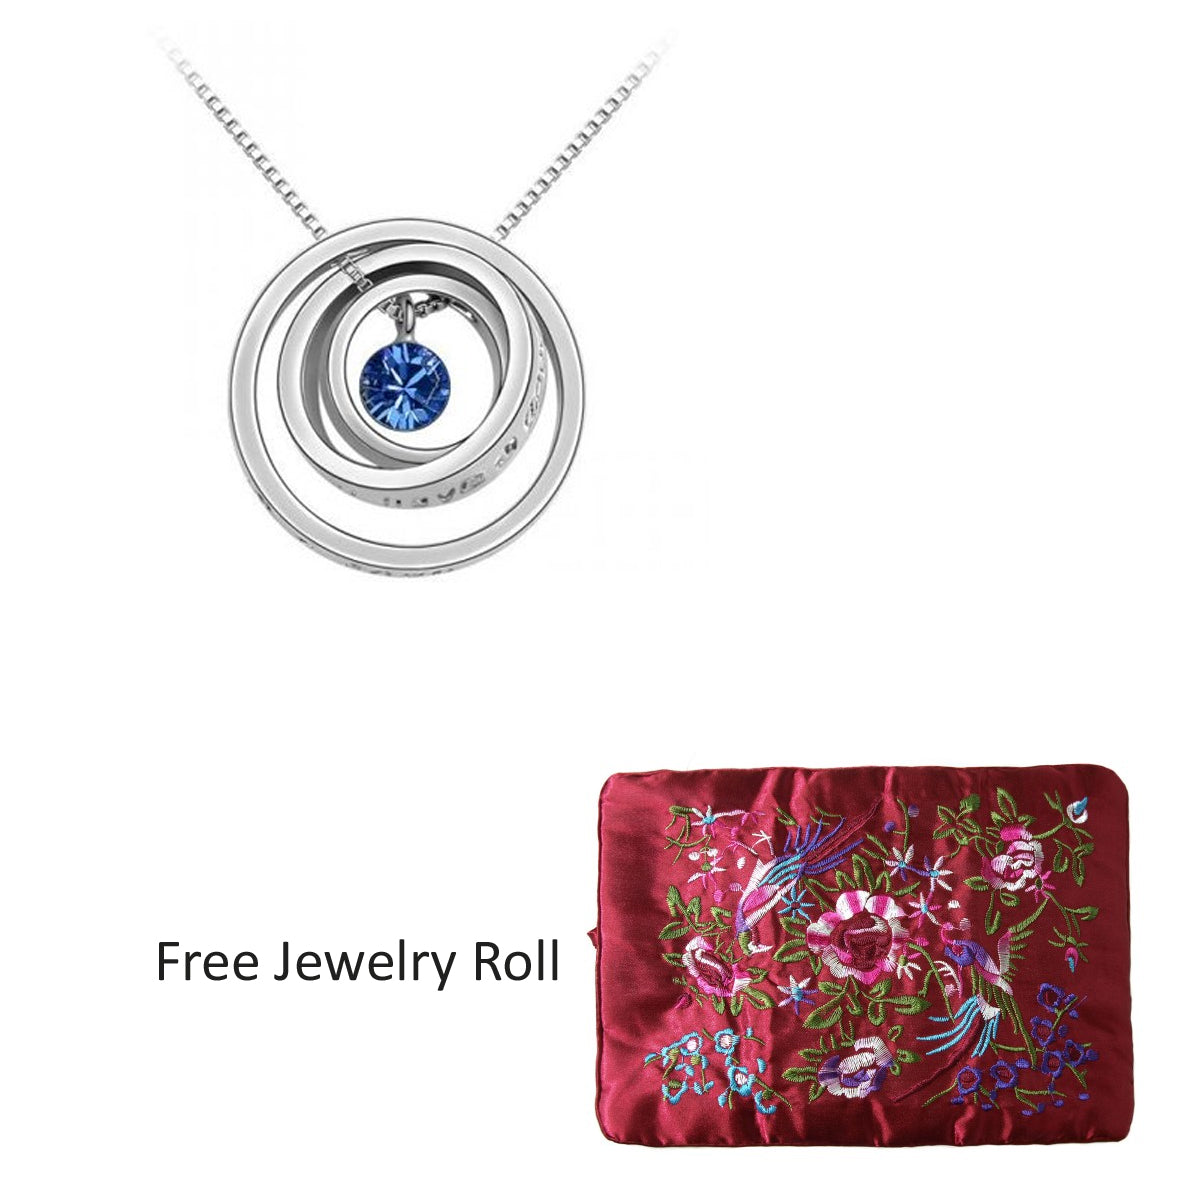 Swarovski Elements Crystal White Gold Plated Triple Rings Pendant Necklace + Large Burgundy Silk Embroidered Jewelry Roll